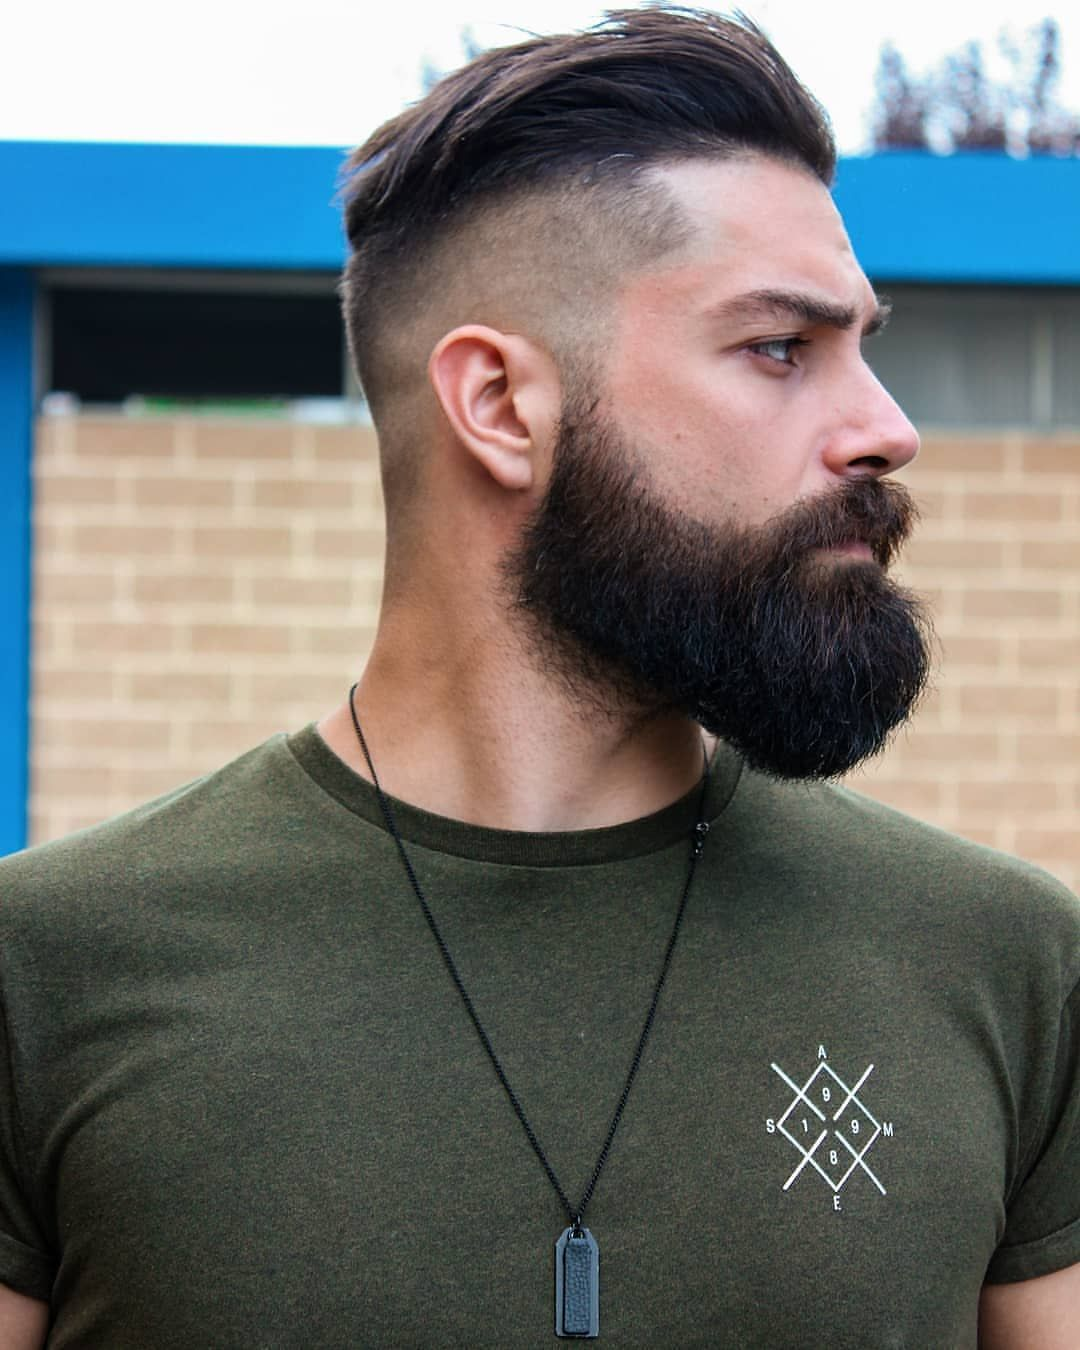 What do you think of this hairstyle? Comment below